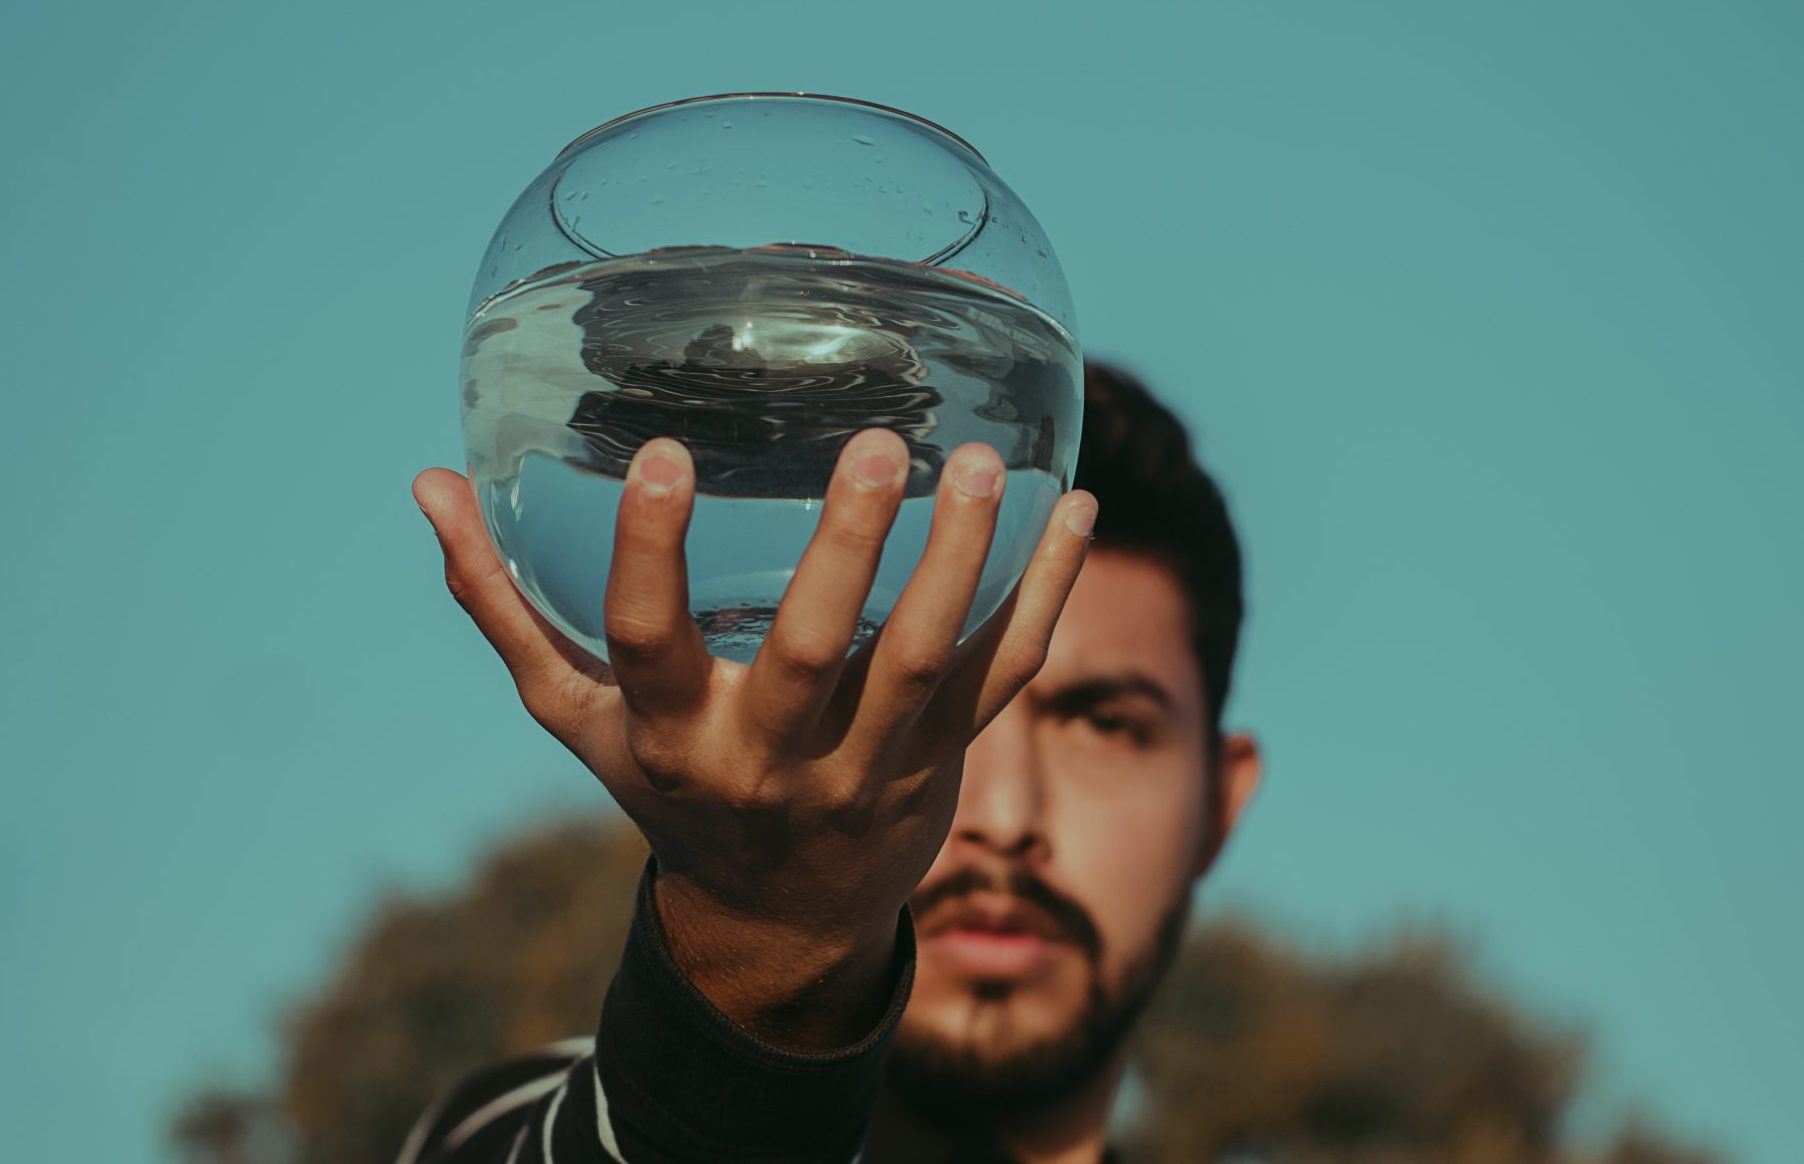 man holding a clear fish bowl of water in out-stretched hand